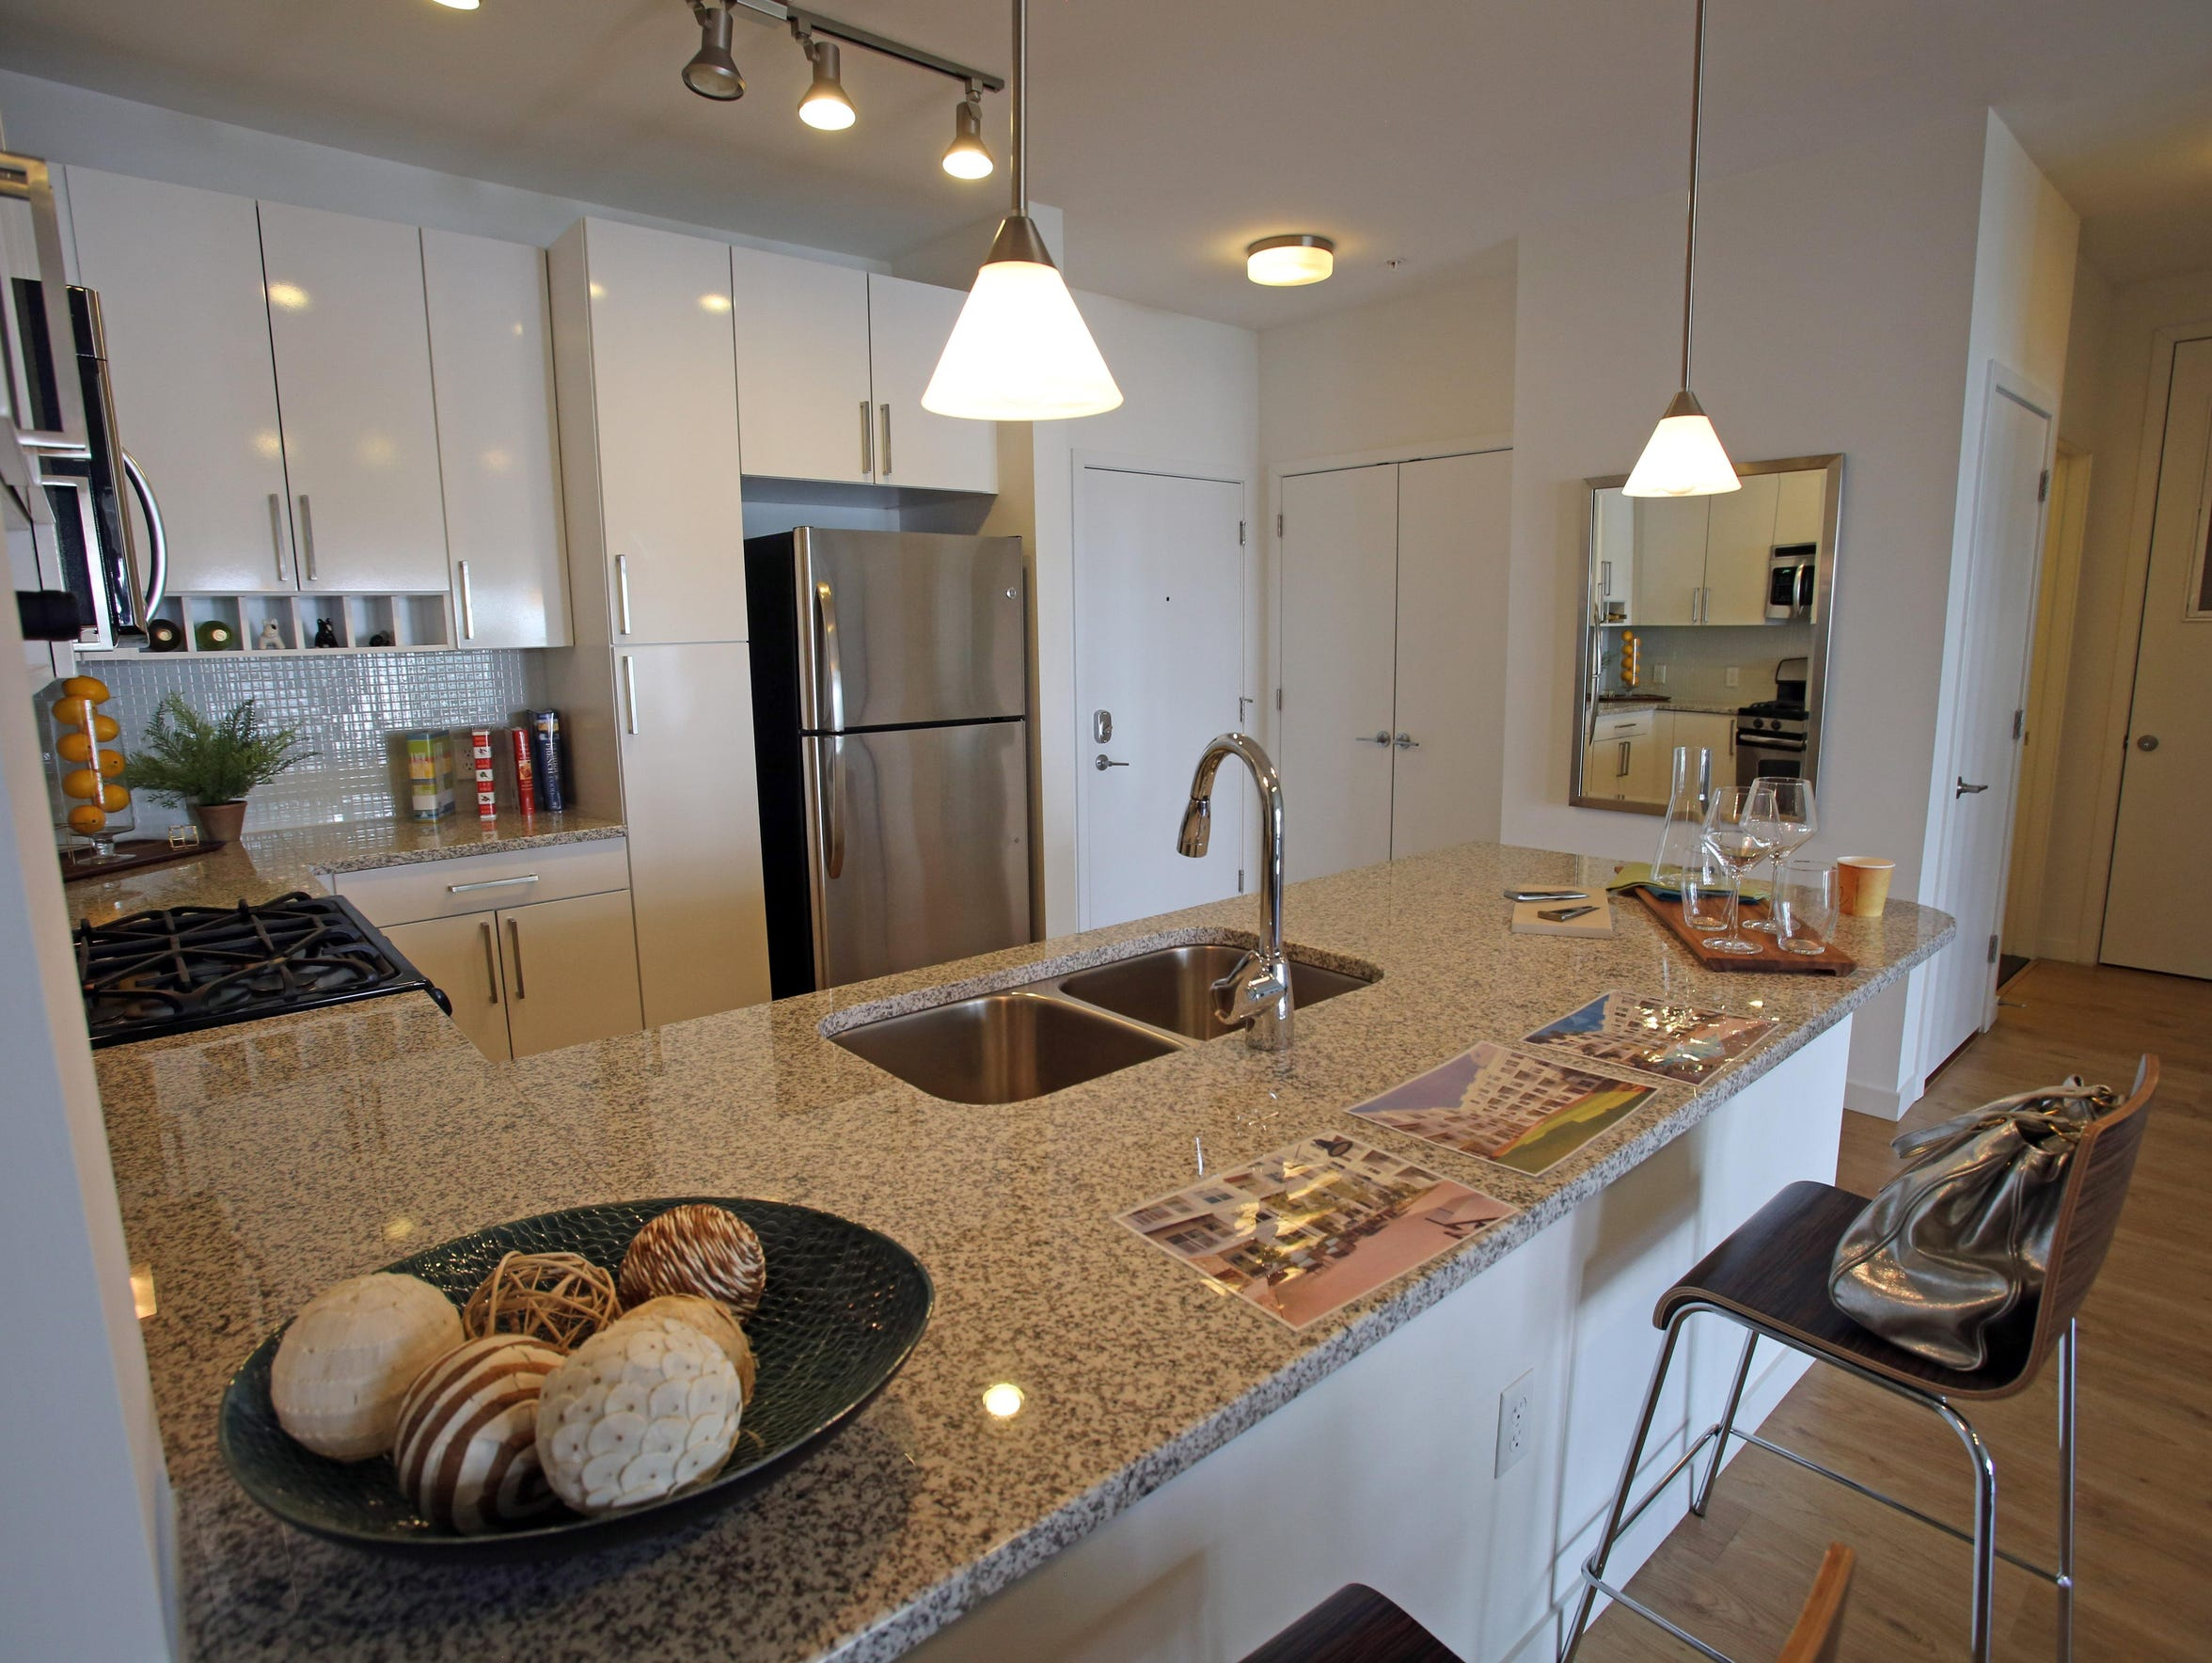 This is a view of the kitchen in a two-bedroom apartment,